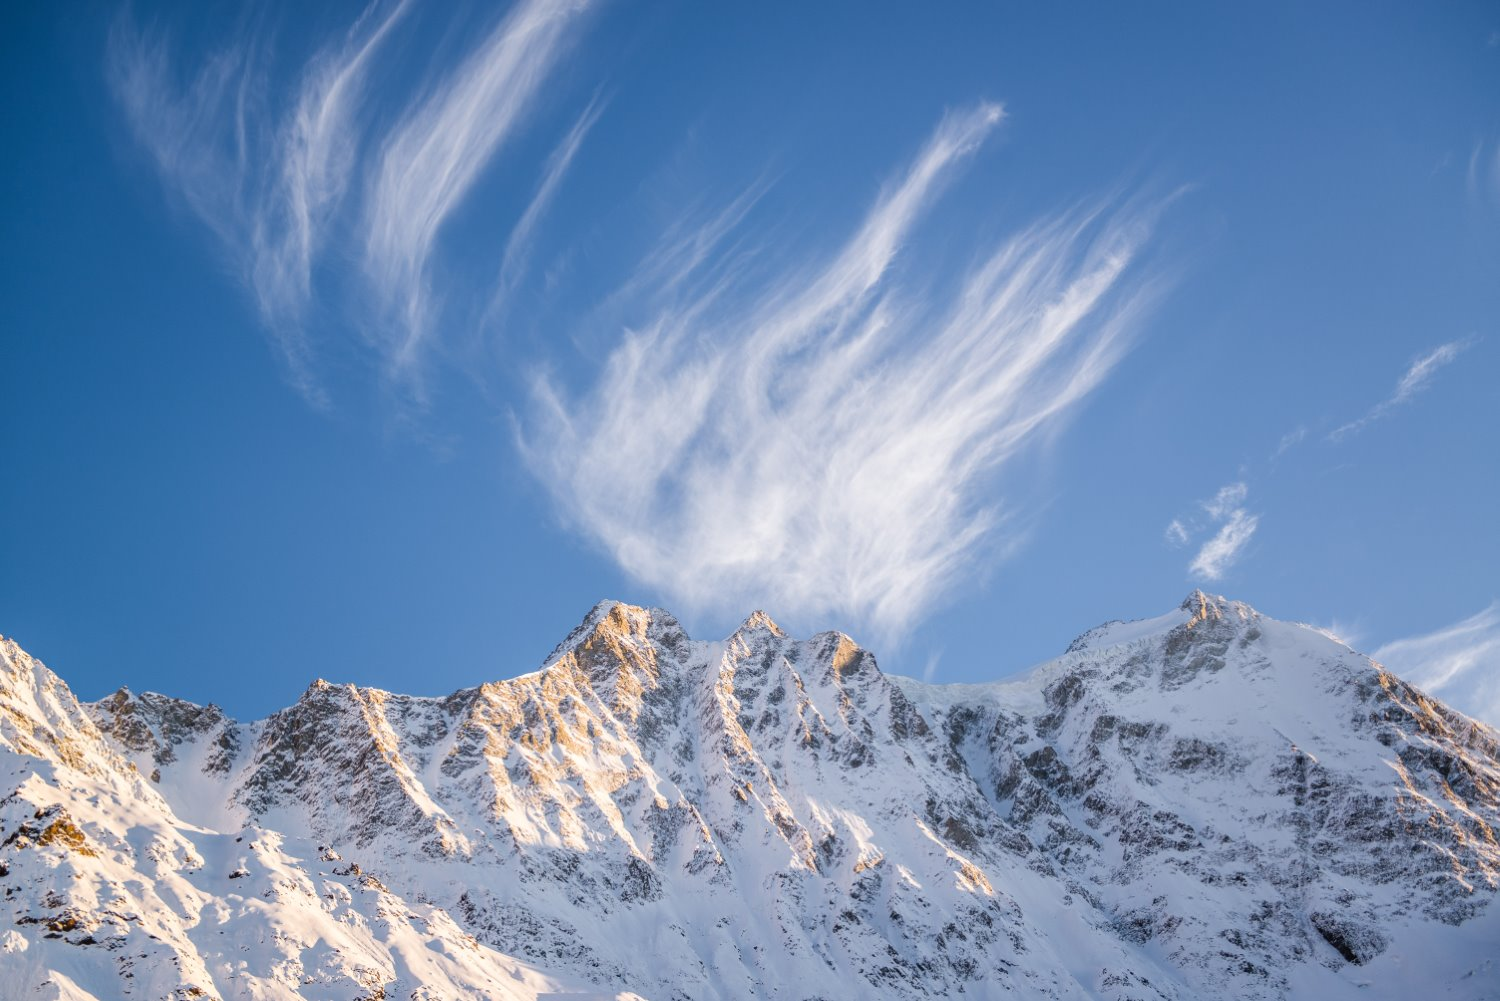 mountains with beautiful clouds forming lines